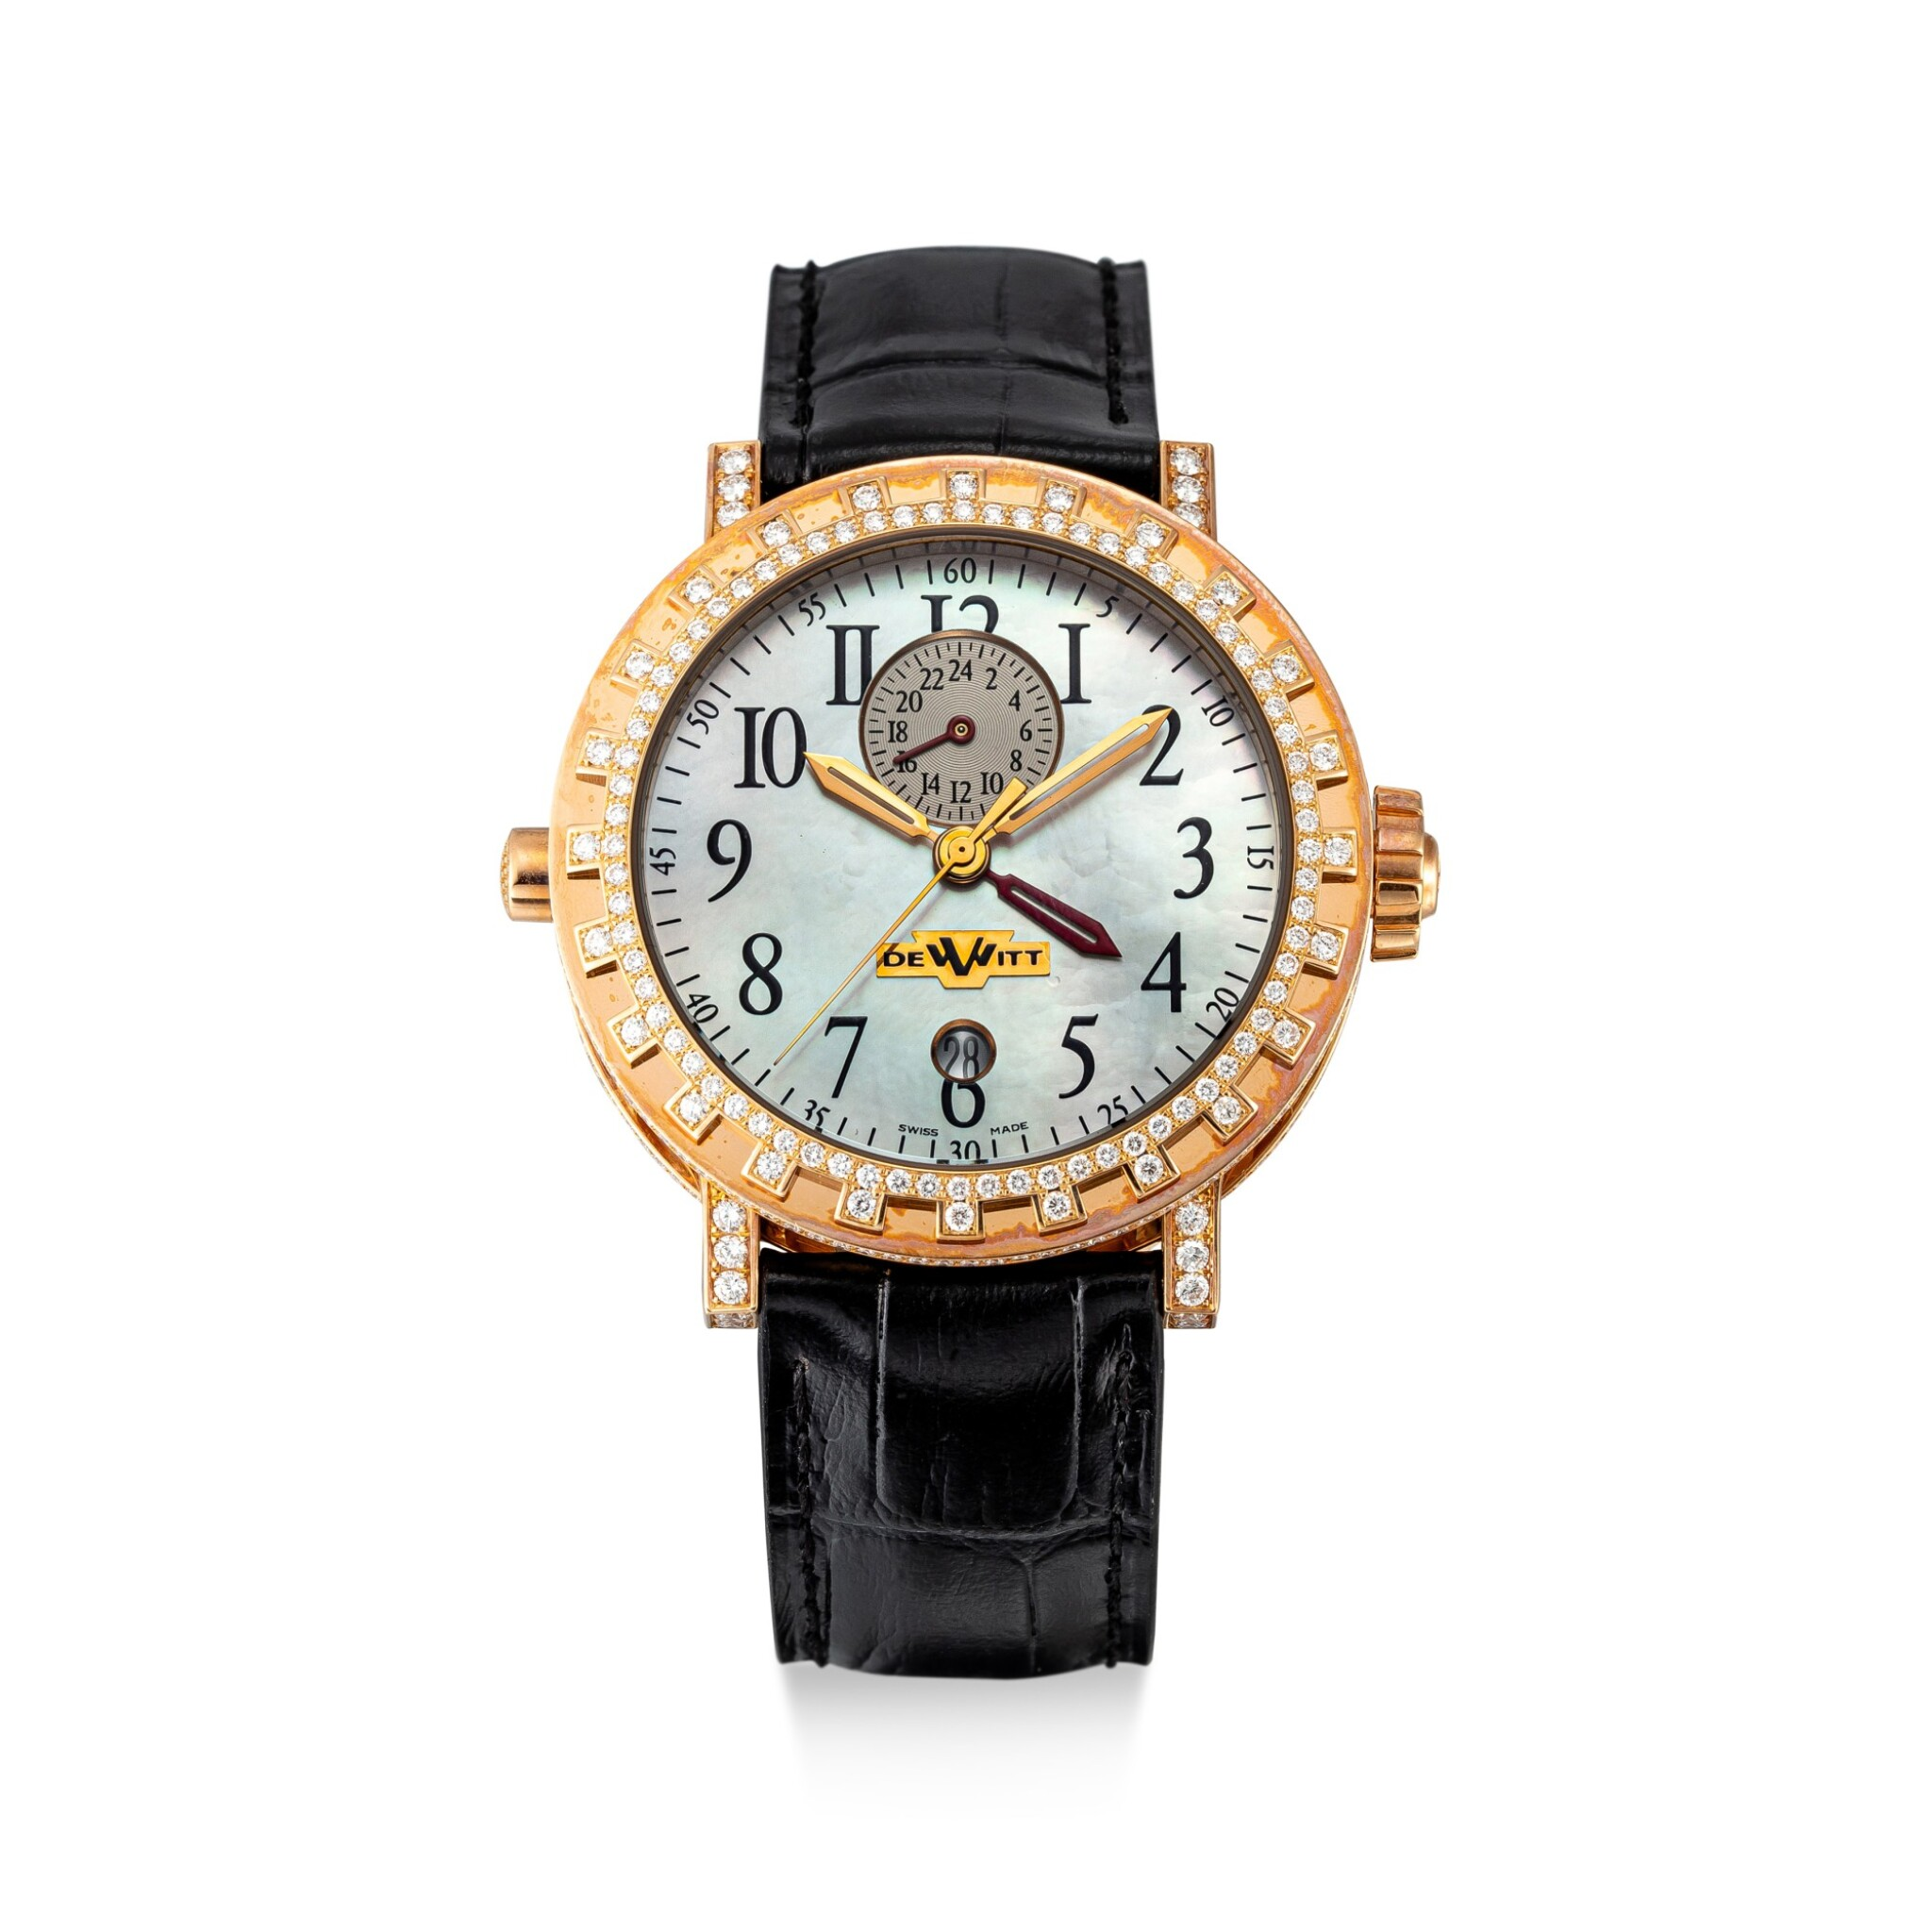 View full screen - View 1 of Lot 611. DEWITT | REFERENCE AC.2001.53/102.M650,  A LIMITED EDITION PINK GOLD AND DIAMOND-SET DUAL TIME ZONE WRISTWATCH WITH DATE AND MOTHER-OF-PEARL DIAL, CIRCA 2018.